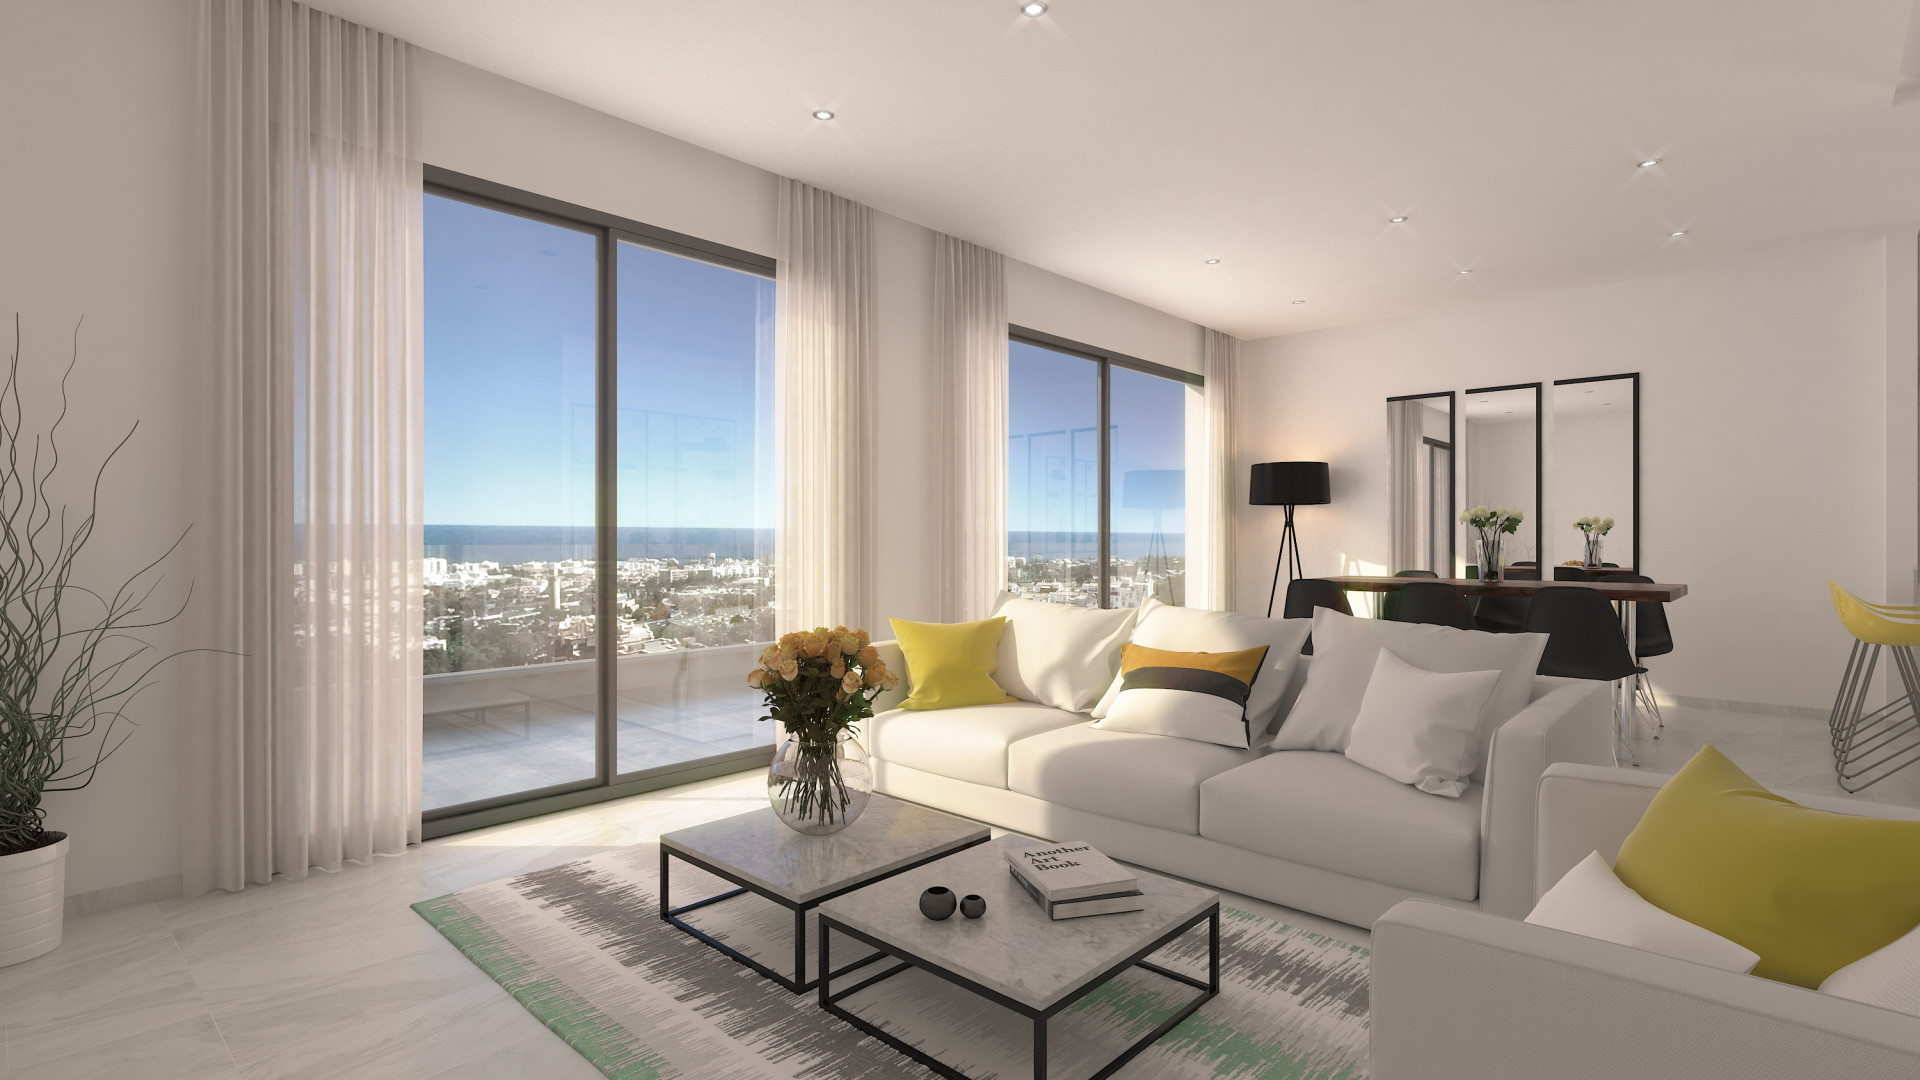 New project of contemporary apartments for sale in Marbella